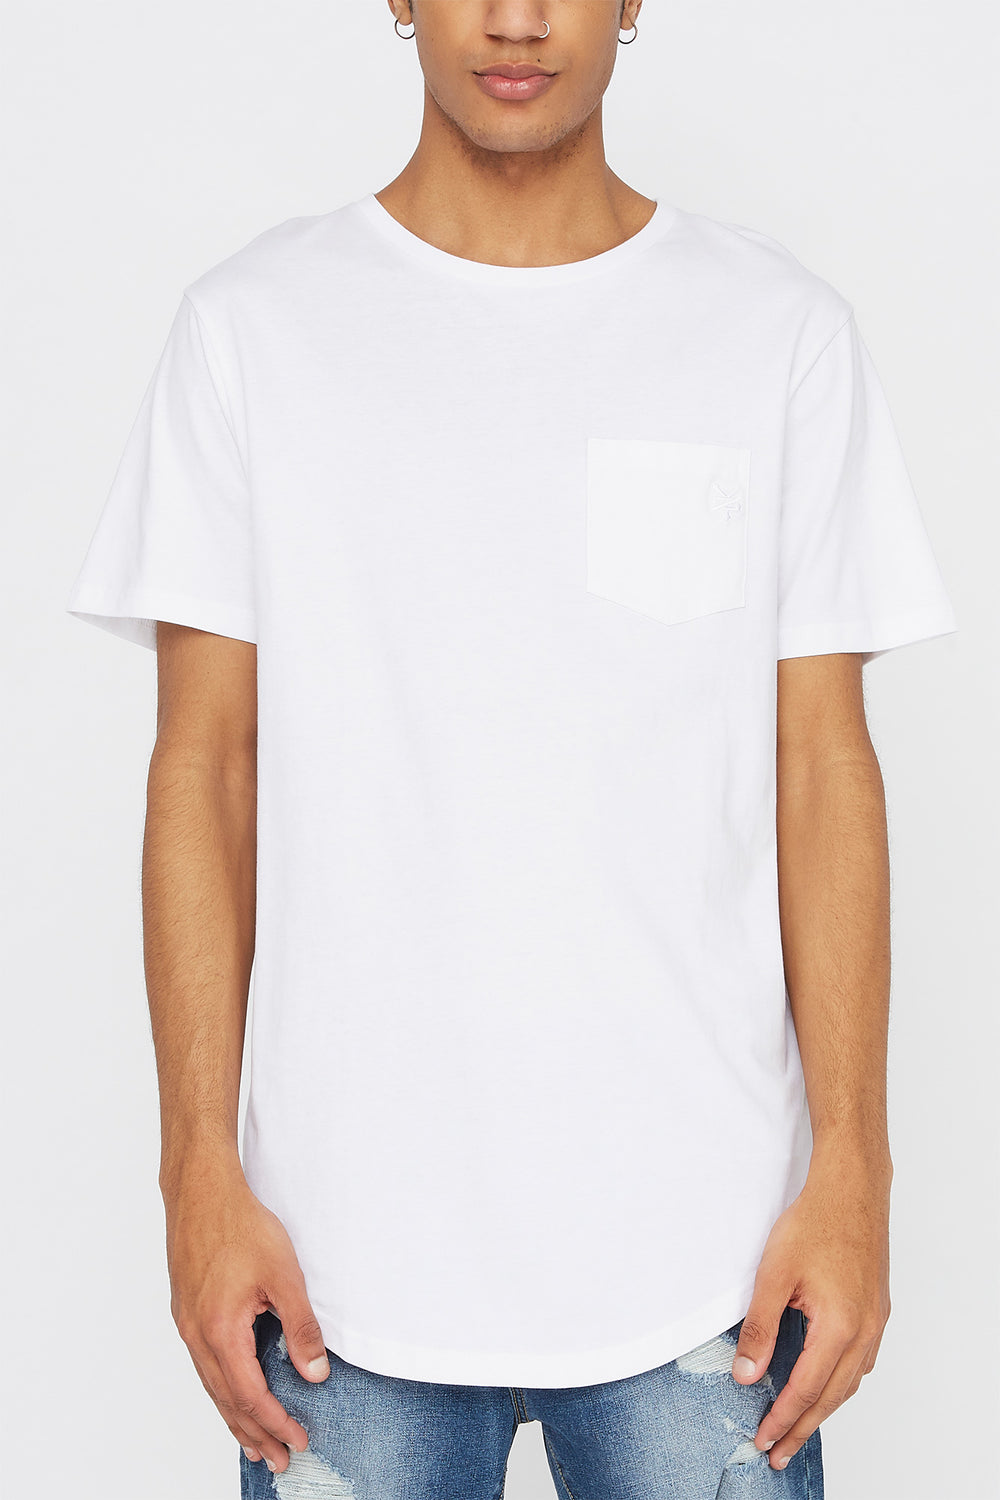 Zoo York Mens Pocket T-Shirt White